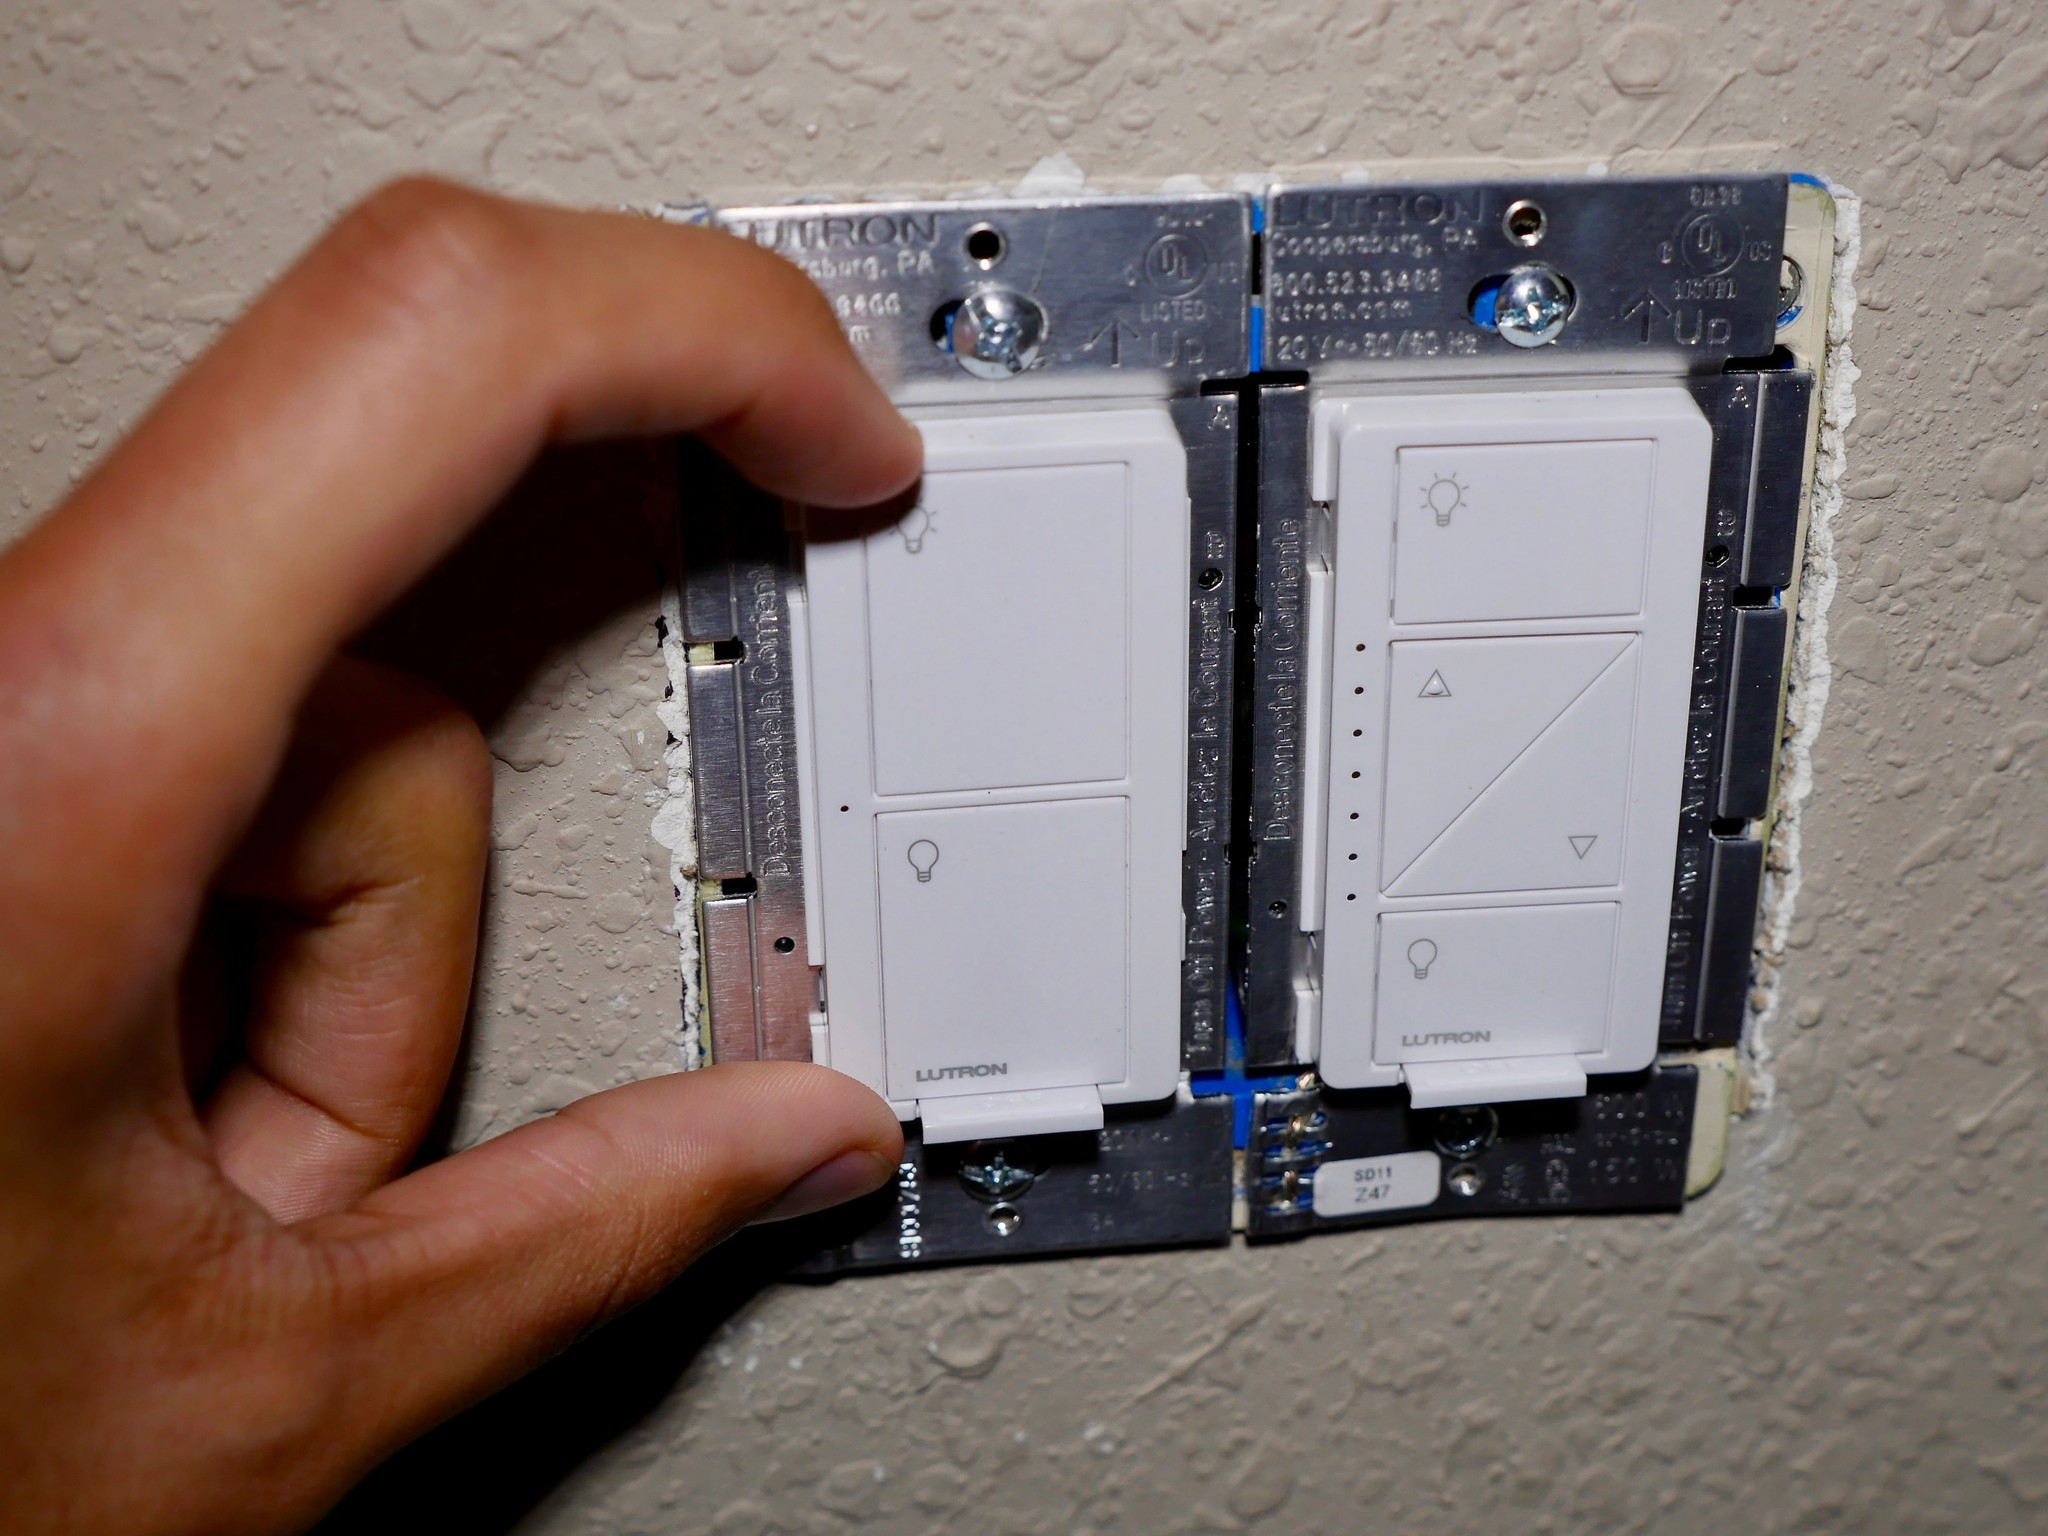 medium resolution of one of the biggest barriers to entry for the connected home life is cost it s not cheap to replace your current crop of home hardware lights fans locks